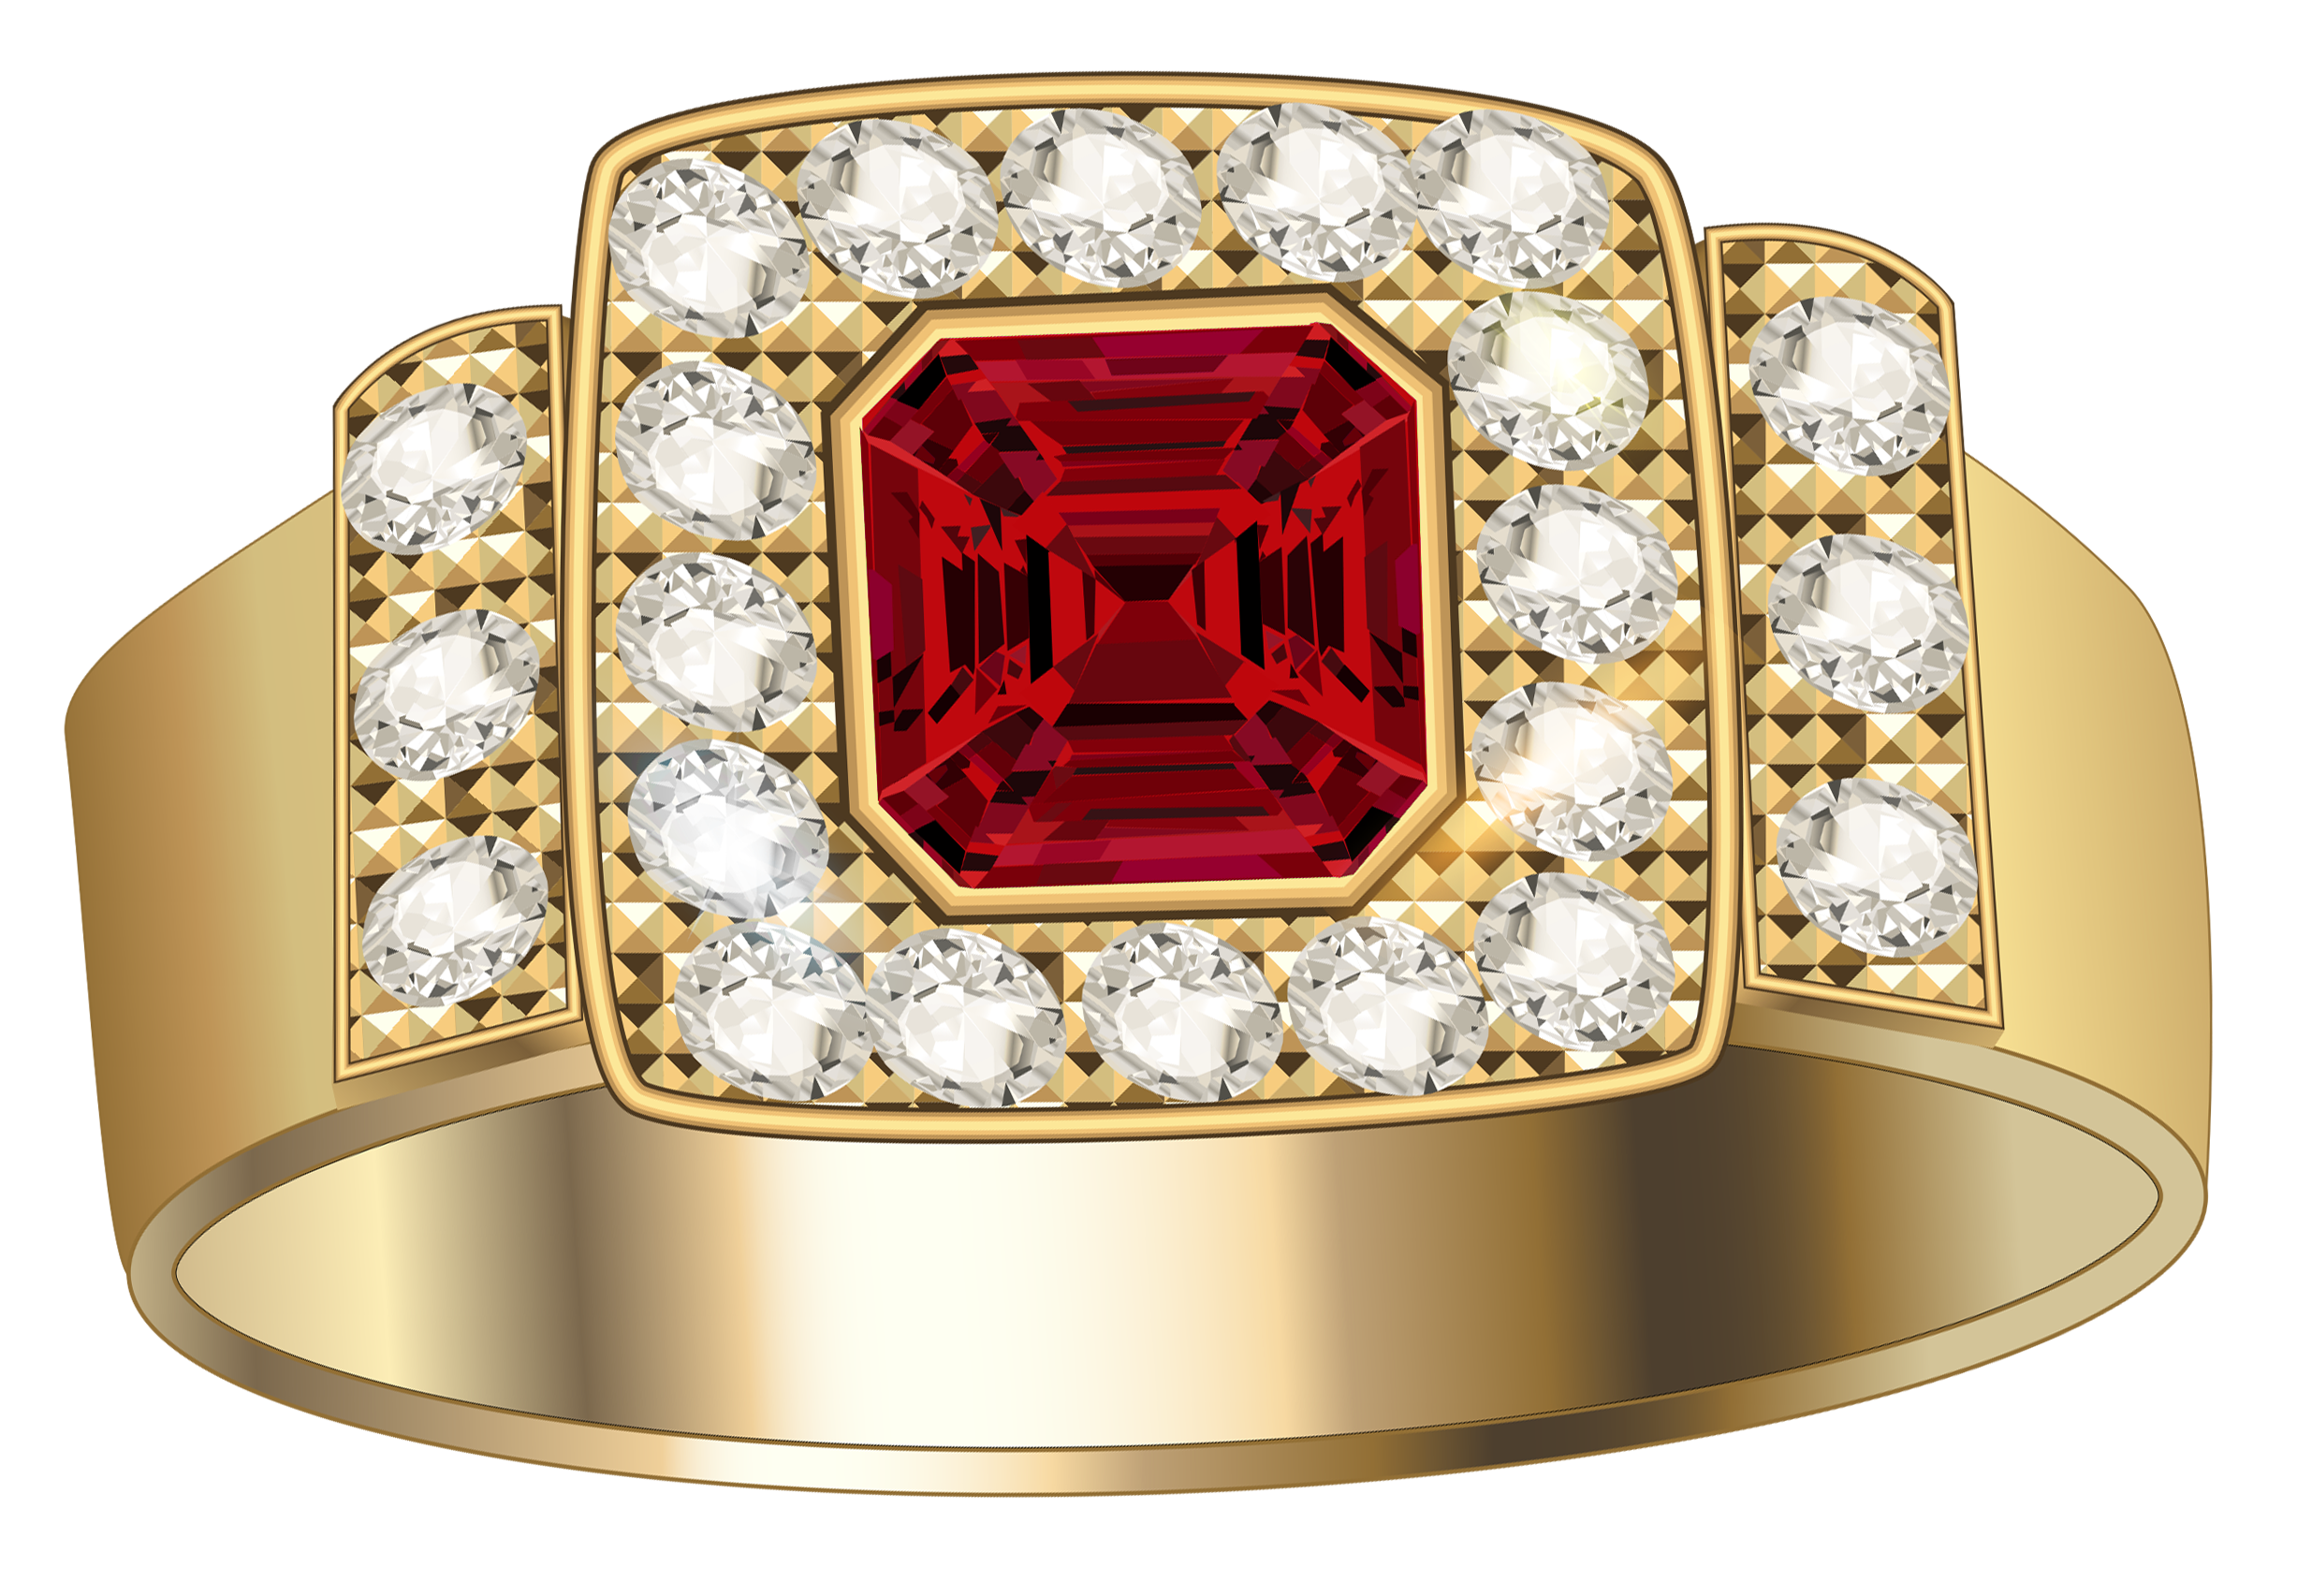 Gold ring with diamonds. Jewellers png image download